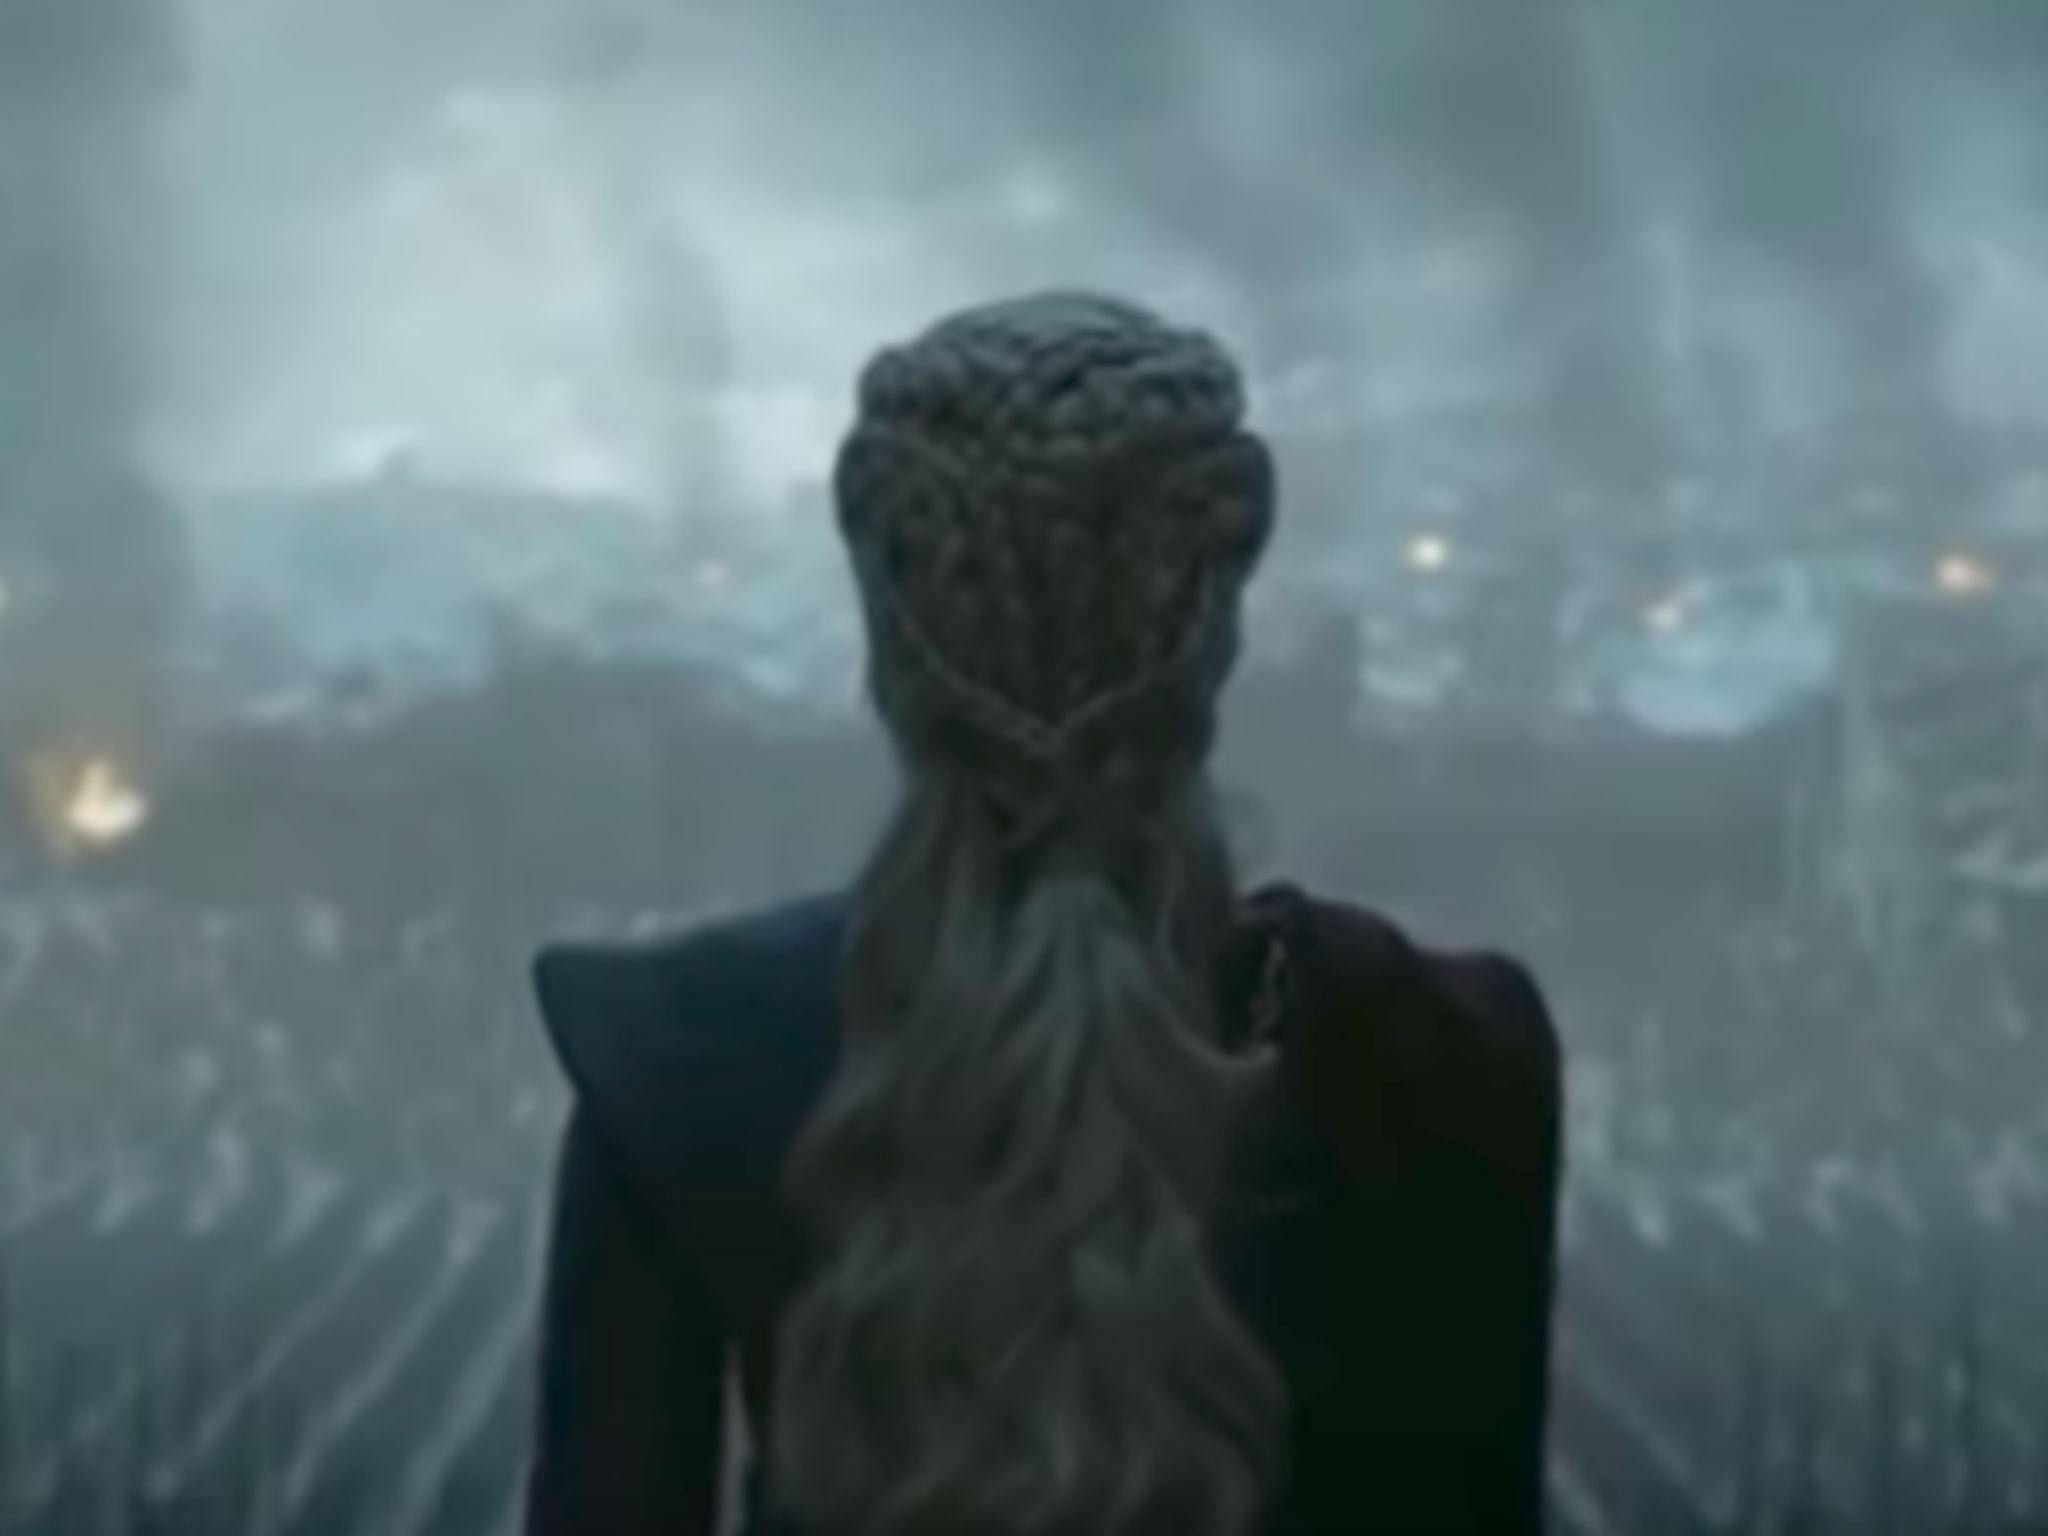 Game of Thrones season 8 episode 6 trailer video: Finale